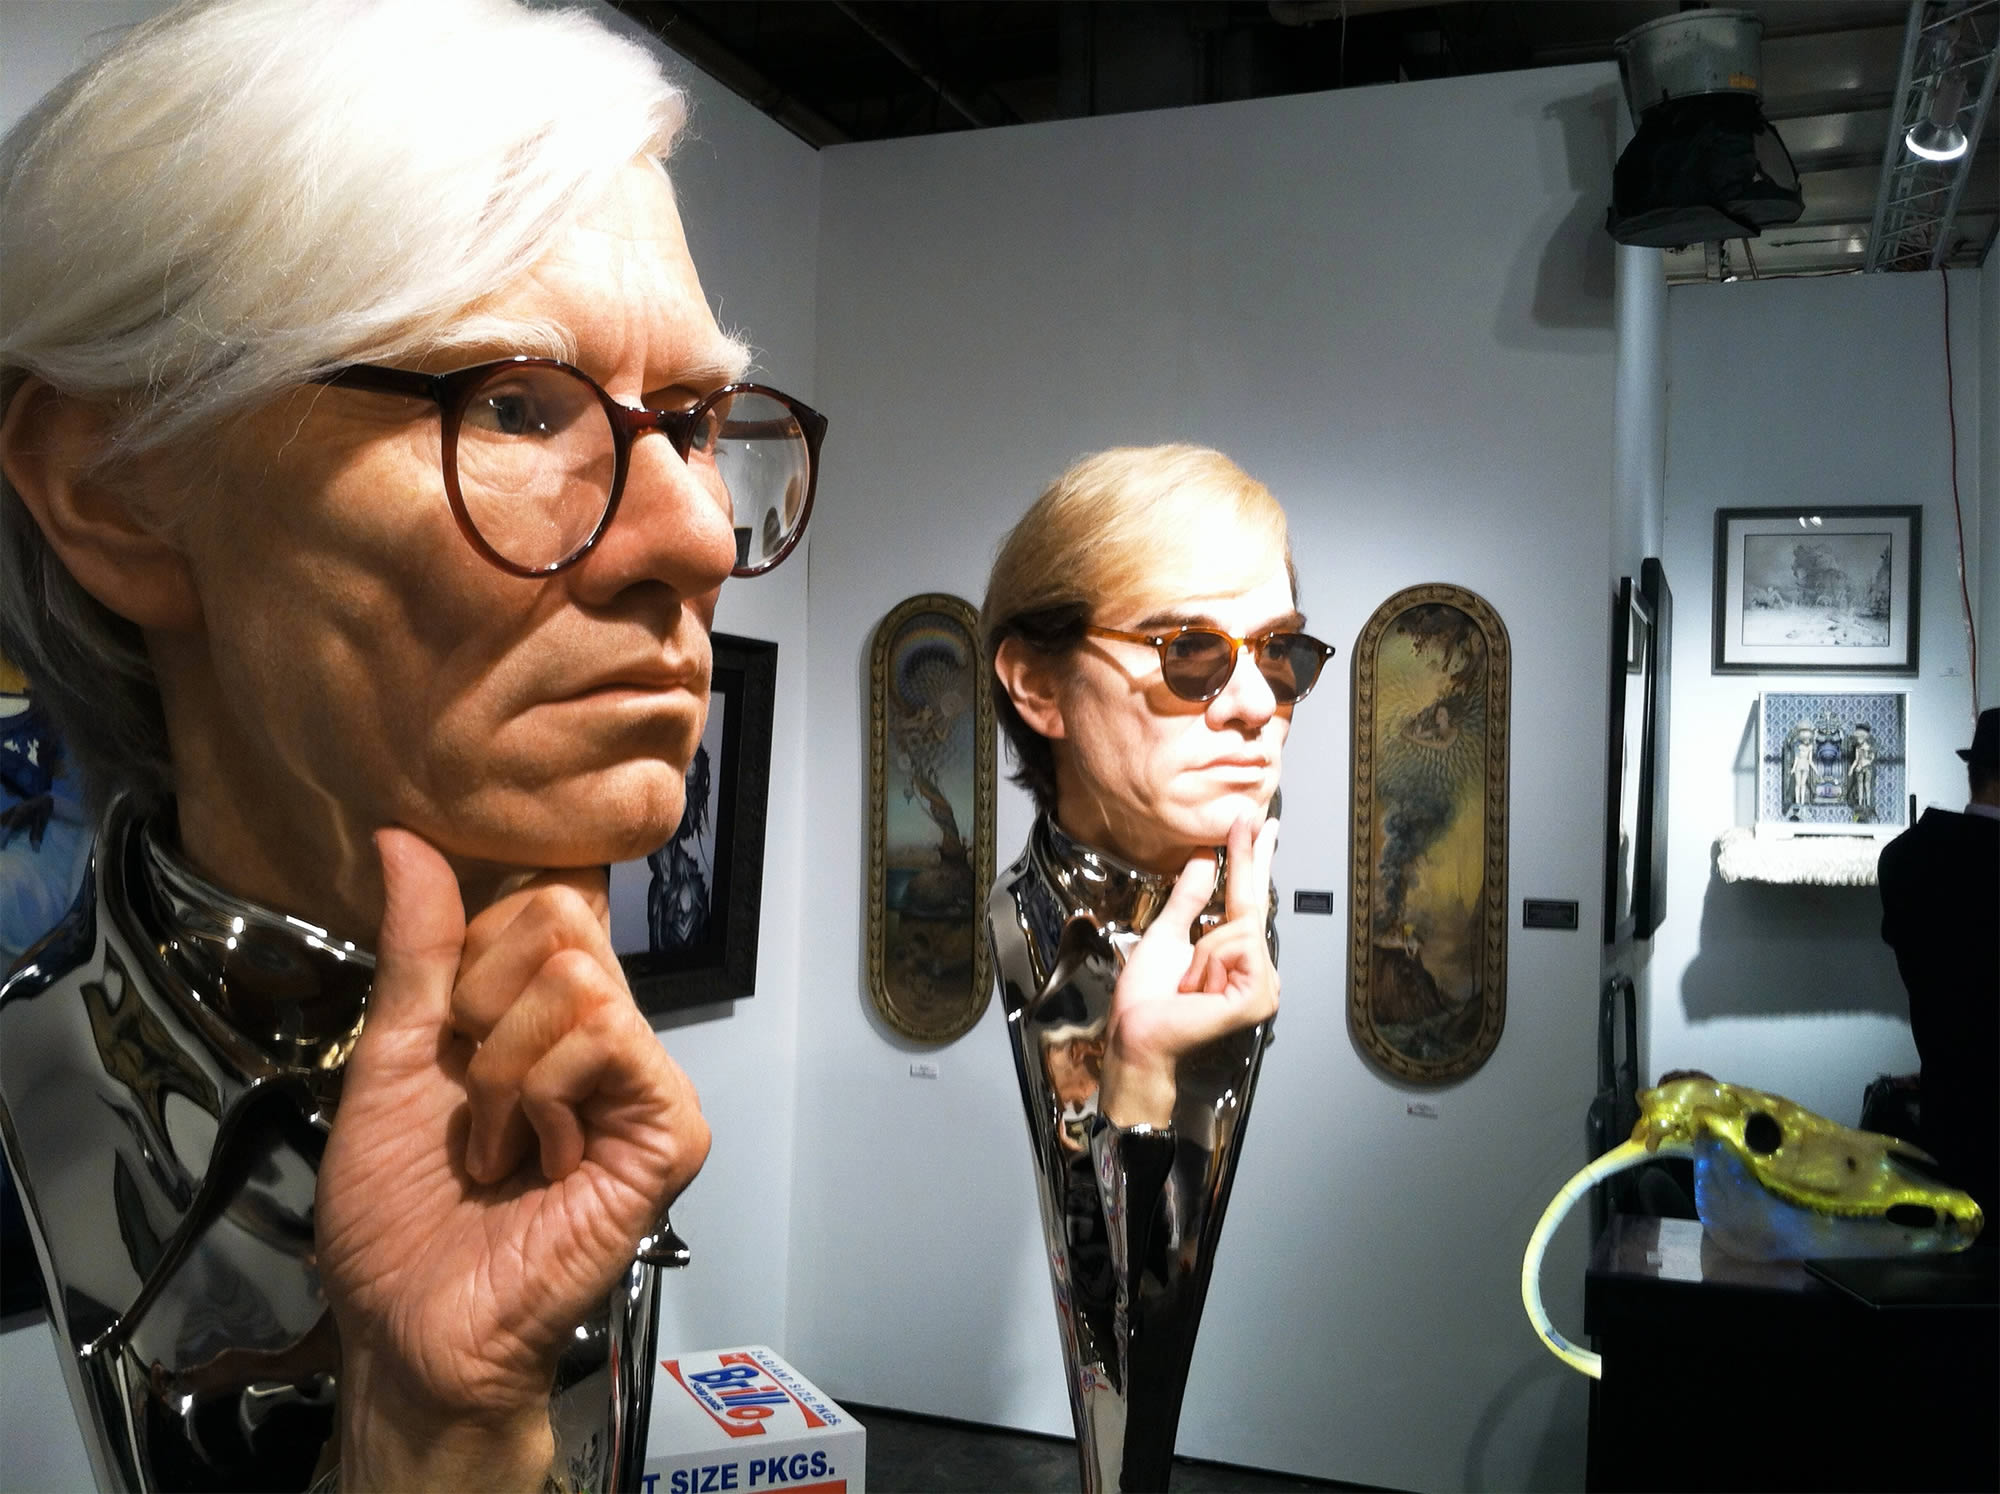 Andy warhol sculptures